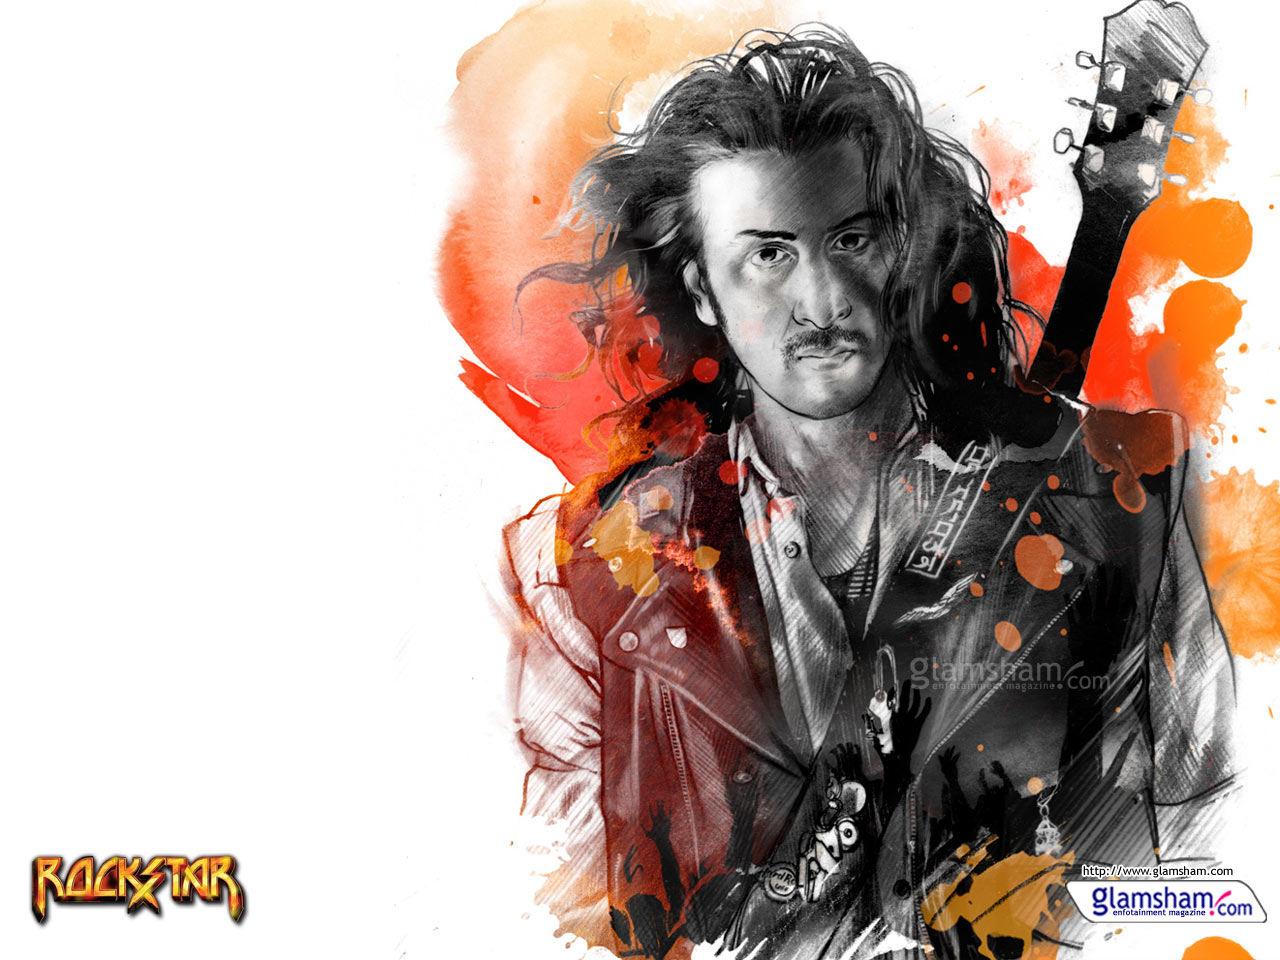 Rockstar movie wallpaper 36443   Glamsham 1280x960